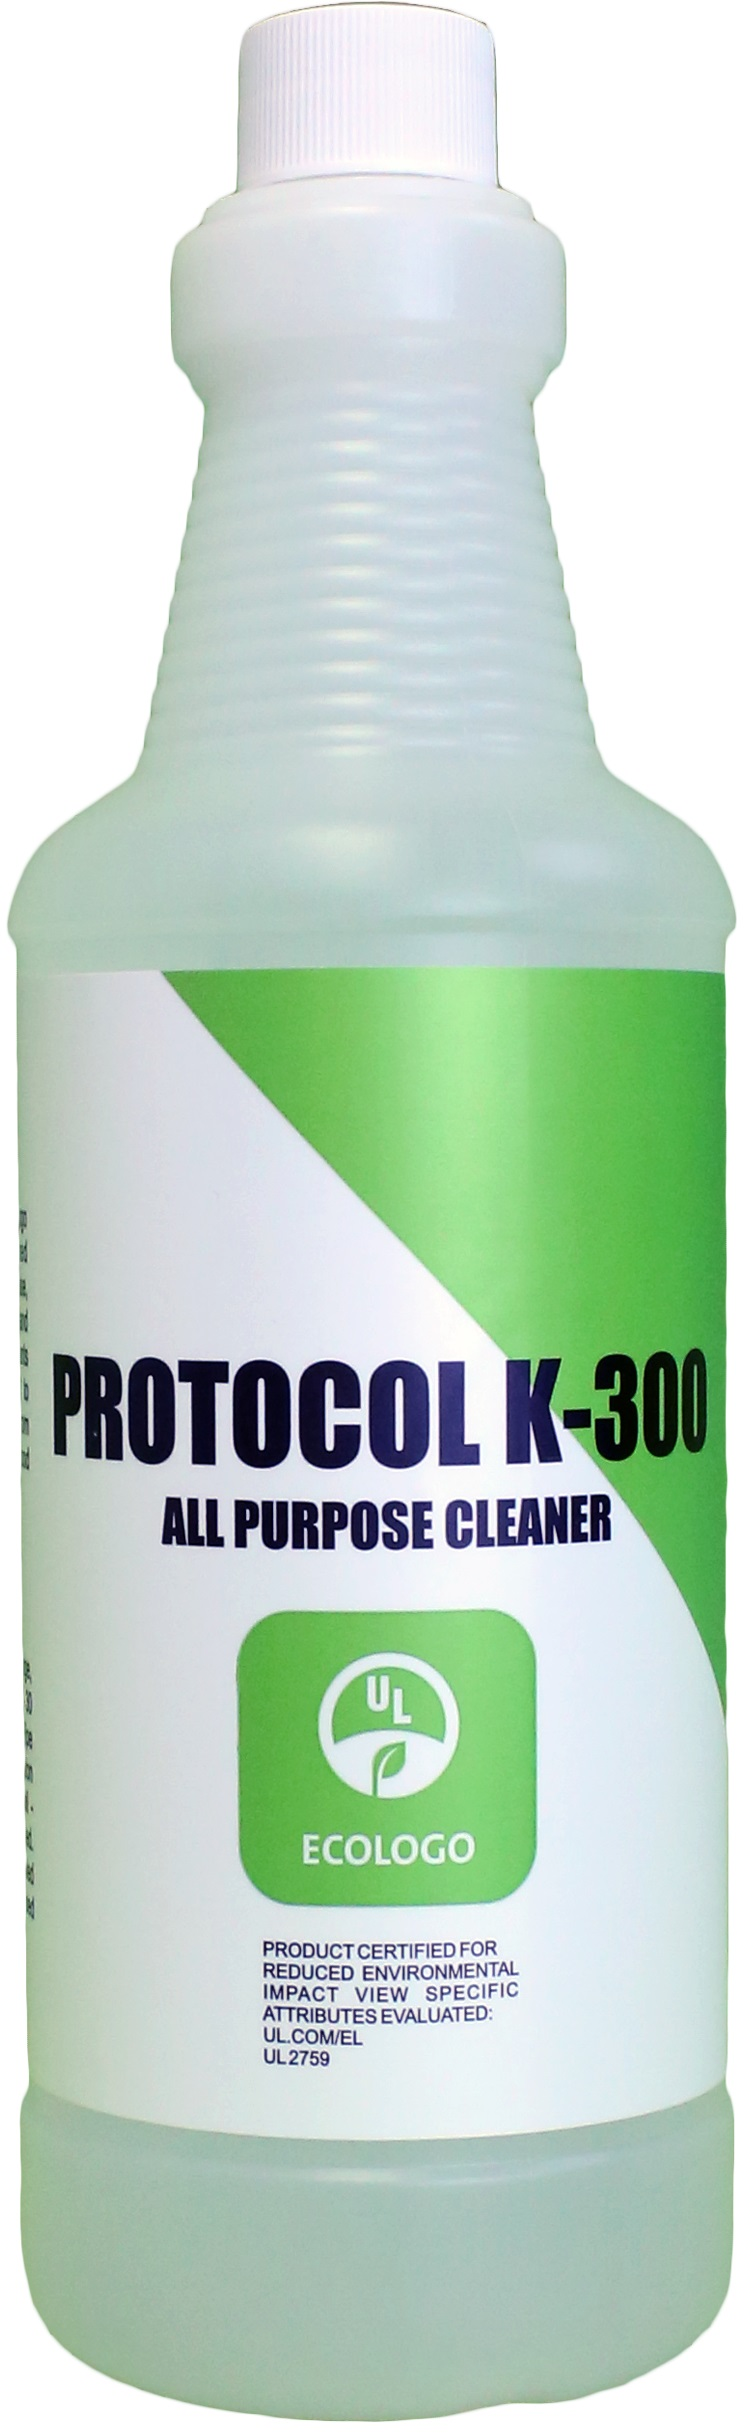 Protocol K300 UL Eco Certified All Purpoase Cleaner - 1 Litre